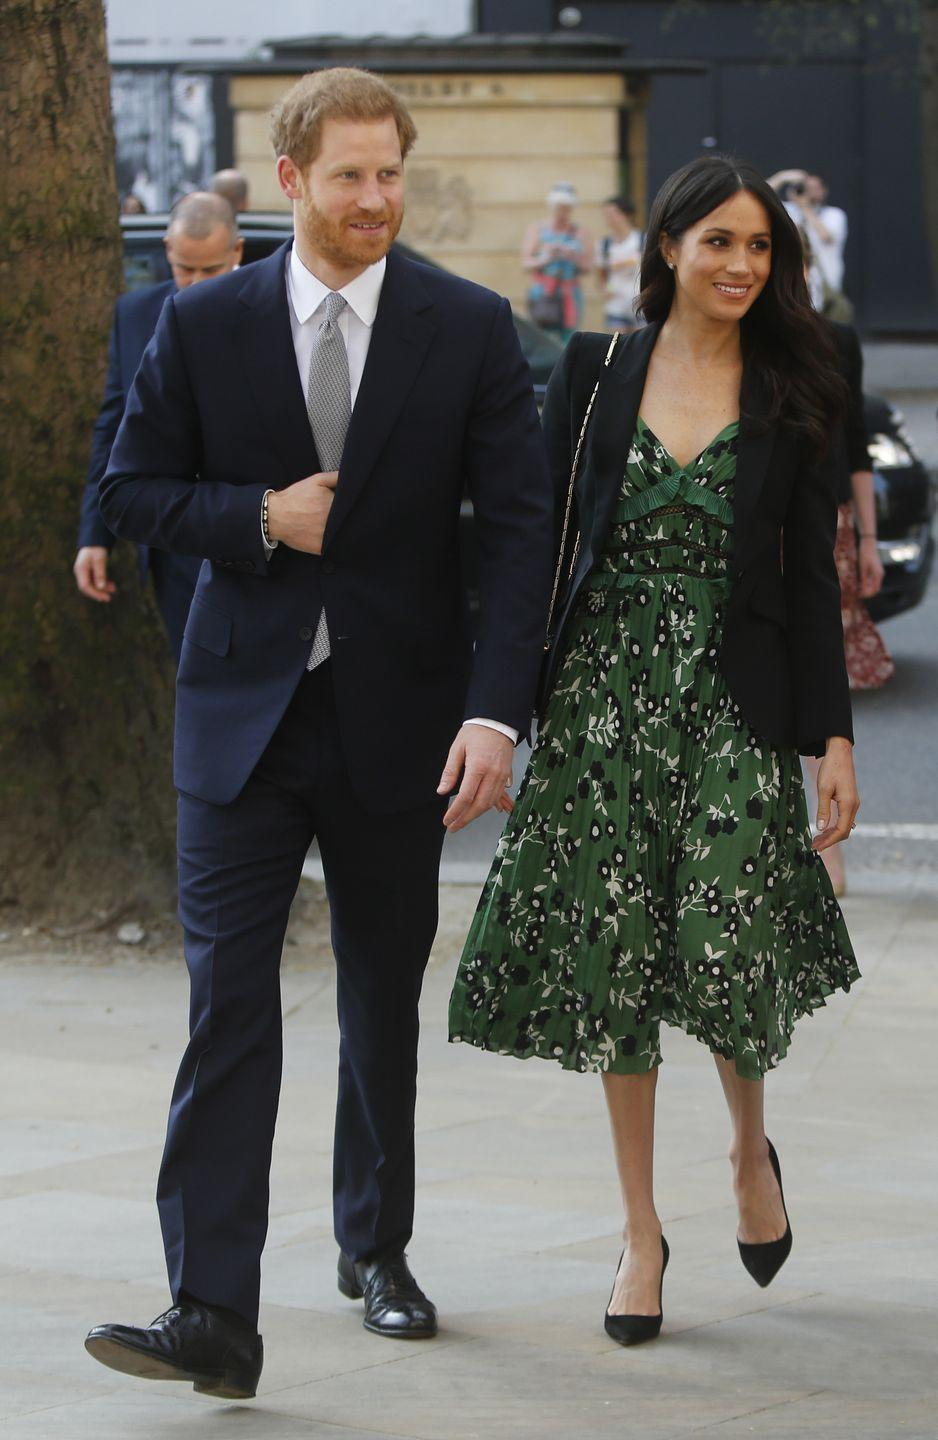 """<p>Meghan opted for a <a href=""""https://www.harrods.com/en-gb/self-portrait/cold-shoulder-floral-dress-p000000000005821467"""" rel=""""nofollow noopener"""" target=""""_blank"""" data-ylk=""""slk:vibrant green dress from Self Portrait"""" class=""""link rapid-noclick-resp"""">vibrant green dress from Self Portrait</a> paired with a dark blazer and black pointy-toe pumps for an <a href=""""https://www.townandcountrymag.com/society/tradition/a12044088/what-are-the-invictus-games-competition/"""" rel=""""nofollow noopener"""" target=""""_blank"""" data-ylk=""""slk:Invictus Games event in London"""" class=""""link rapid-noclick-resp"""">Invictus Games event in London</a>.</p><p><a class=""""link rapid-noclick-resp"""" href=""""https://go.redirectingat.com?id=74968X1596630&url=https%3A%2F%2Fwww.neimanmarcus.com%2FSelf-Portrait-Cold-Shoulder-Floral-Print-Midi-Dress-with-Pleats-Frills%2Fprod206200208%2Fp.prod&sref=https%3A%2F%2Fwww.townandcountrymag.com%2Fstyle%2Ffashion-trends%2Fg3272%2Fmeghan-markle-preppy-style%2F"""" rel=""""nofollow noopener"""" target=""""_blank"""" data-ylk=""""slk:SHOP NOW"""">SHOP NOW</a> <em>Self-Portrait Cold-Shoulder Floral-Print Midi Dress, $510</em><br></p>"""